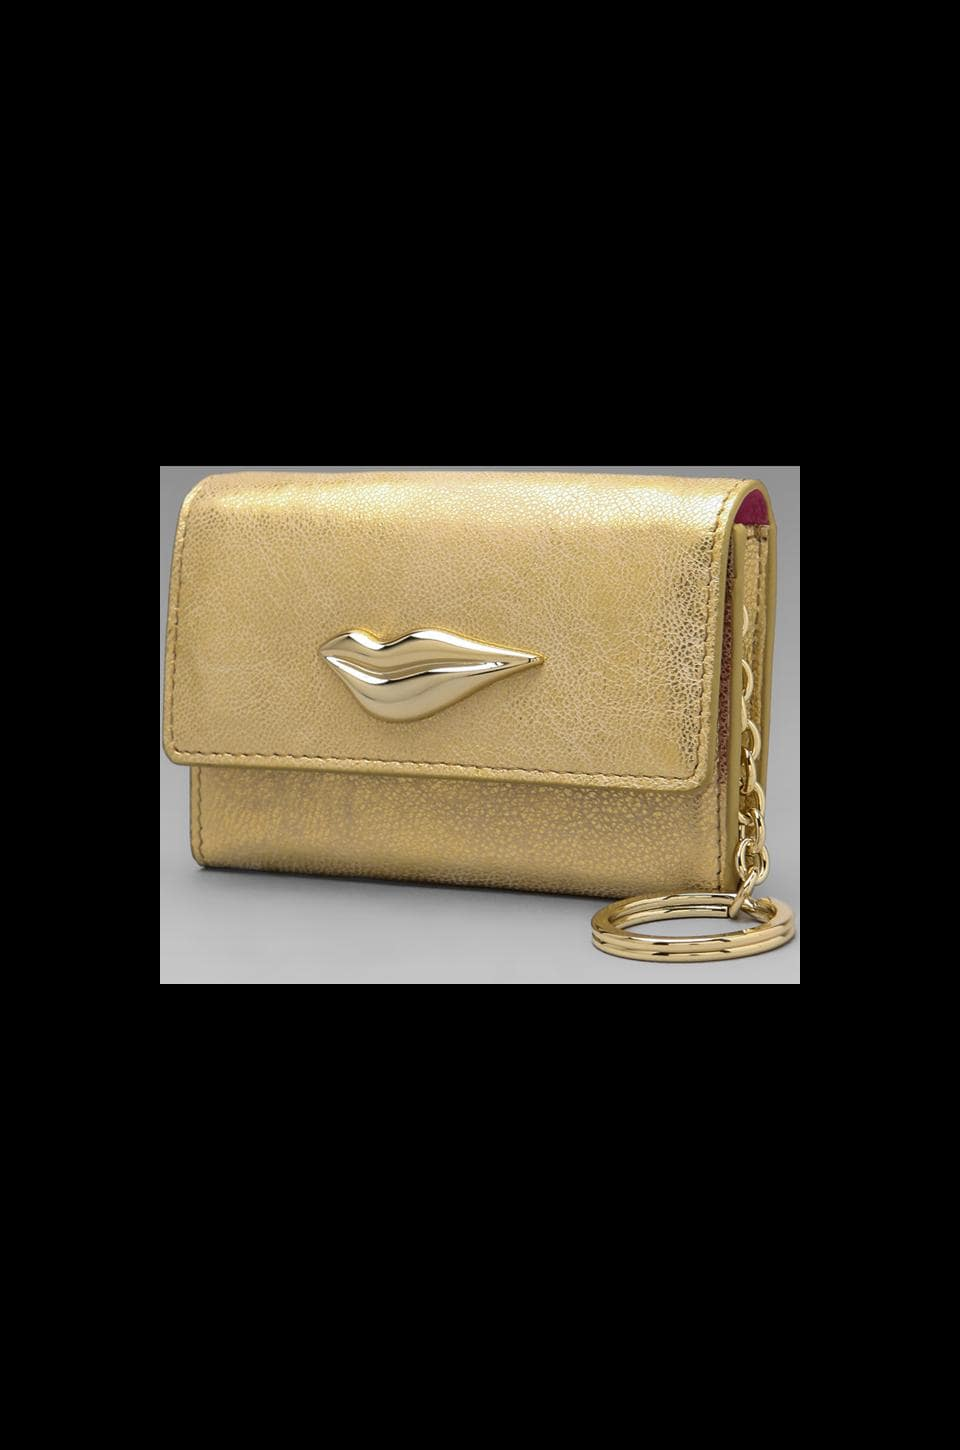 Diane von Furstenberg Lips Card Case in Gold